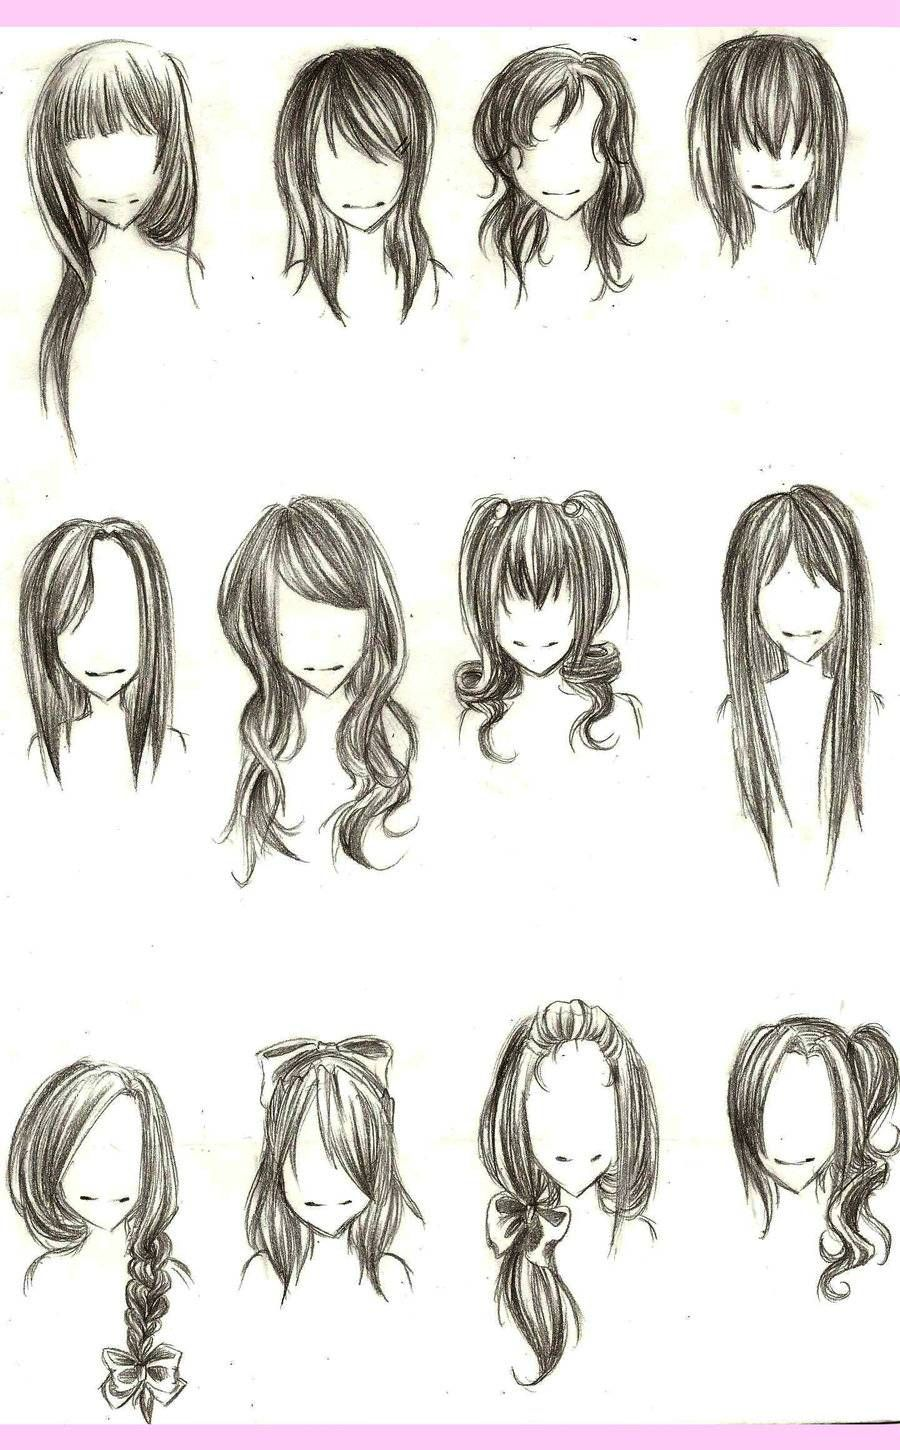 Anime hairstyles for girls sketch hd images 3 hd - Sketch anime wallpaper ...